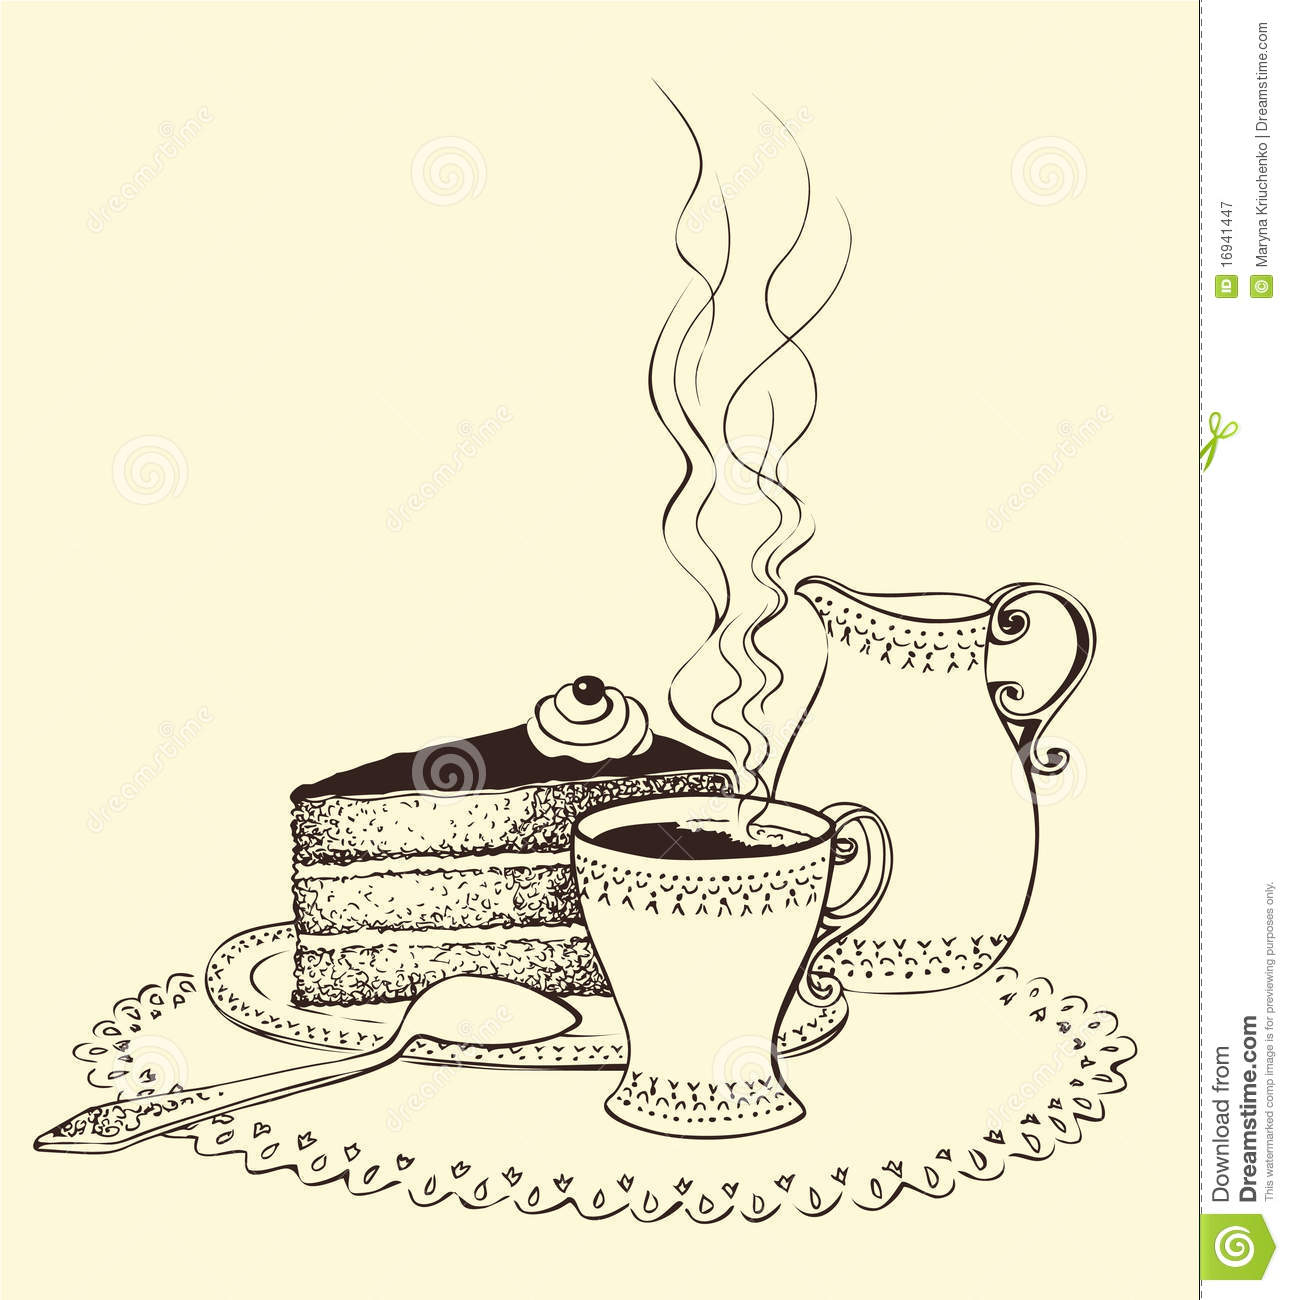 Clipart Kuchen Und Torten A Cup Of Coffee Cake And Milk Jug Royalty Free Stock